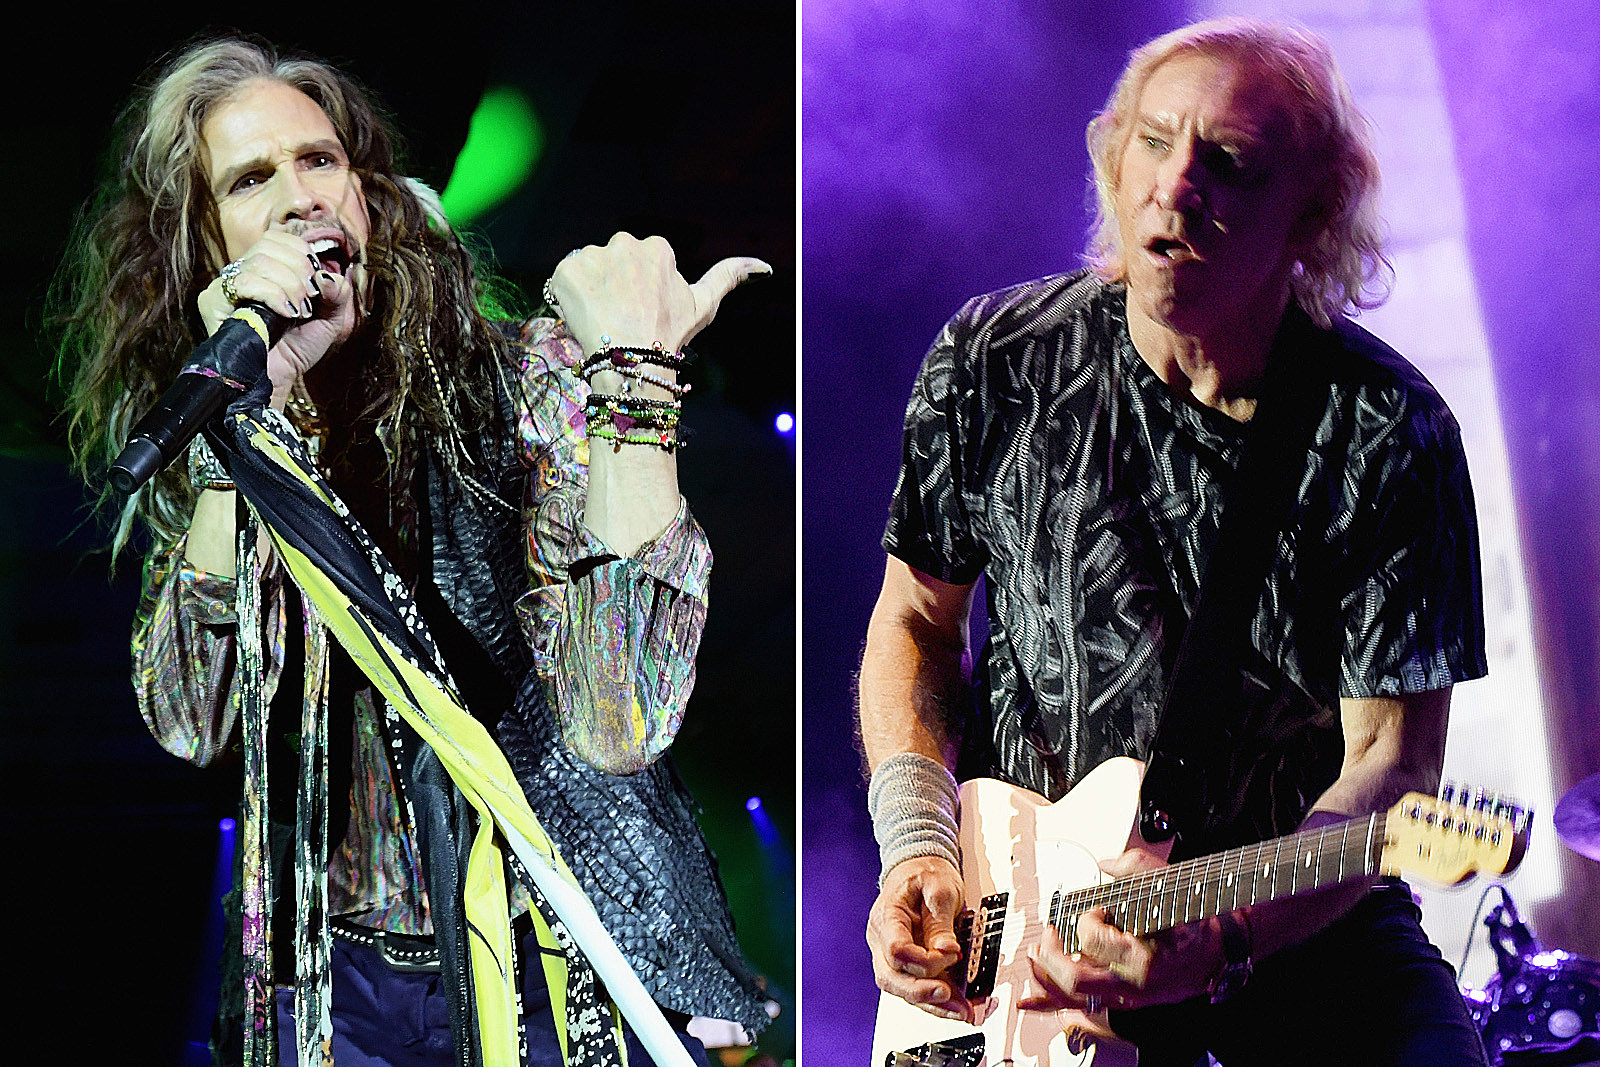 Steven Tyler, Joe Walsh Discuss Temptation to Return to Drinking